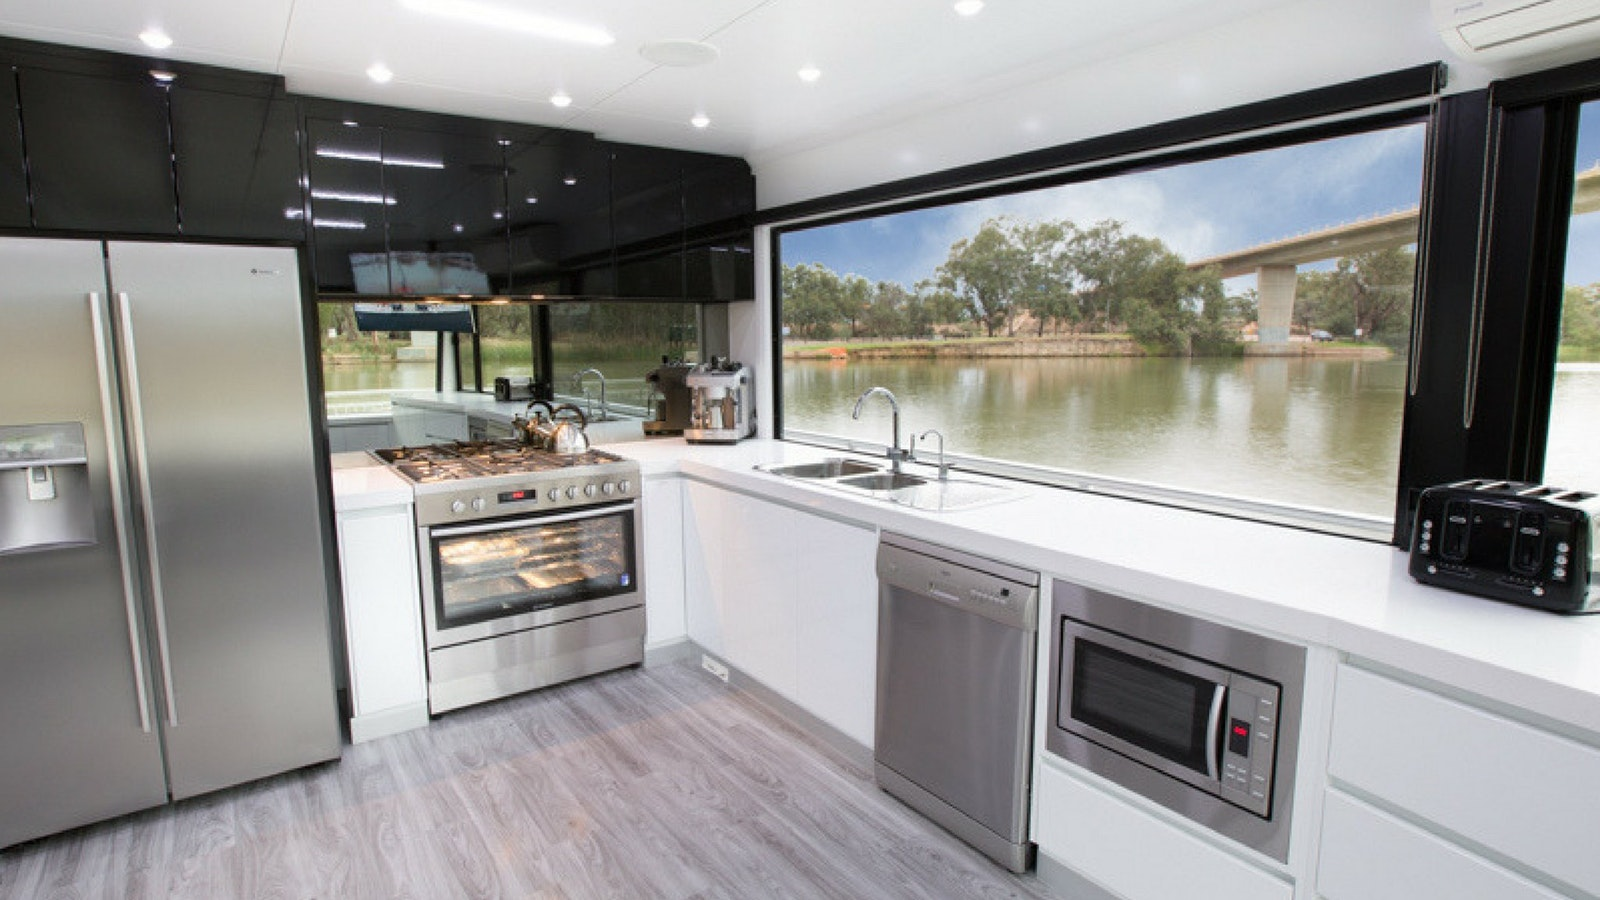 All Seasons Houseboats have modern kitchens